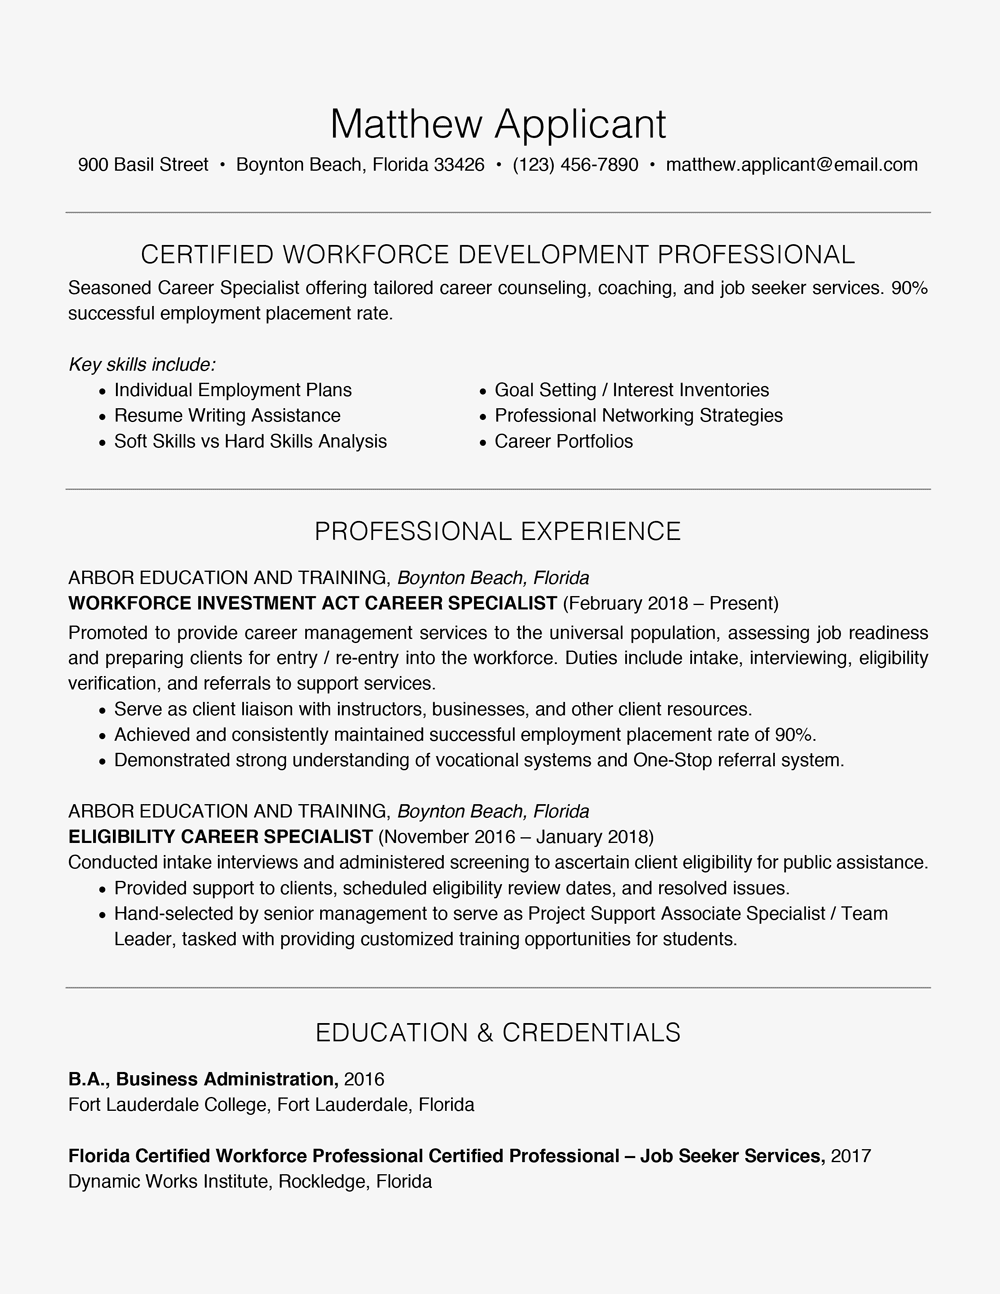 Resume Extraordinary How to Write a OnePage Resume